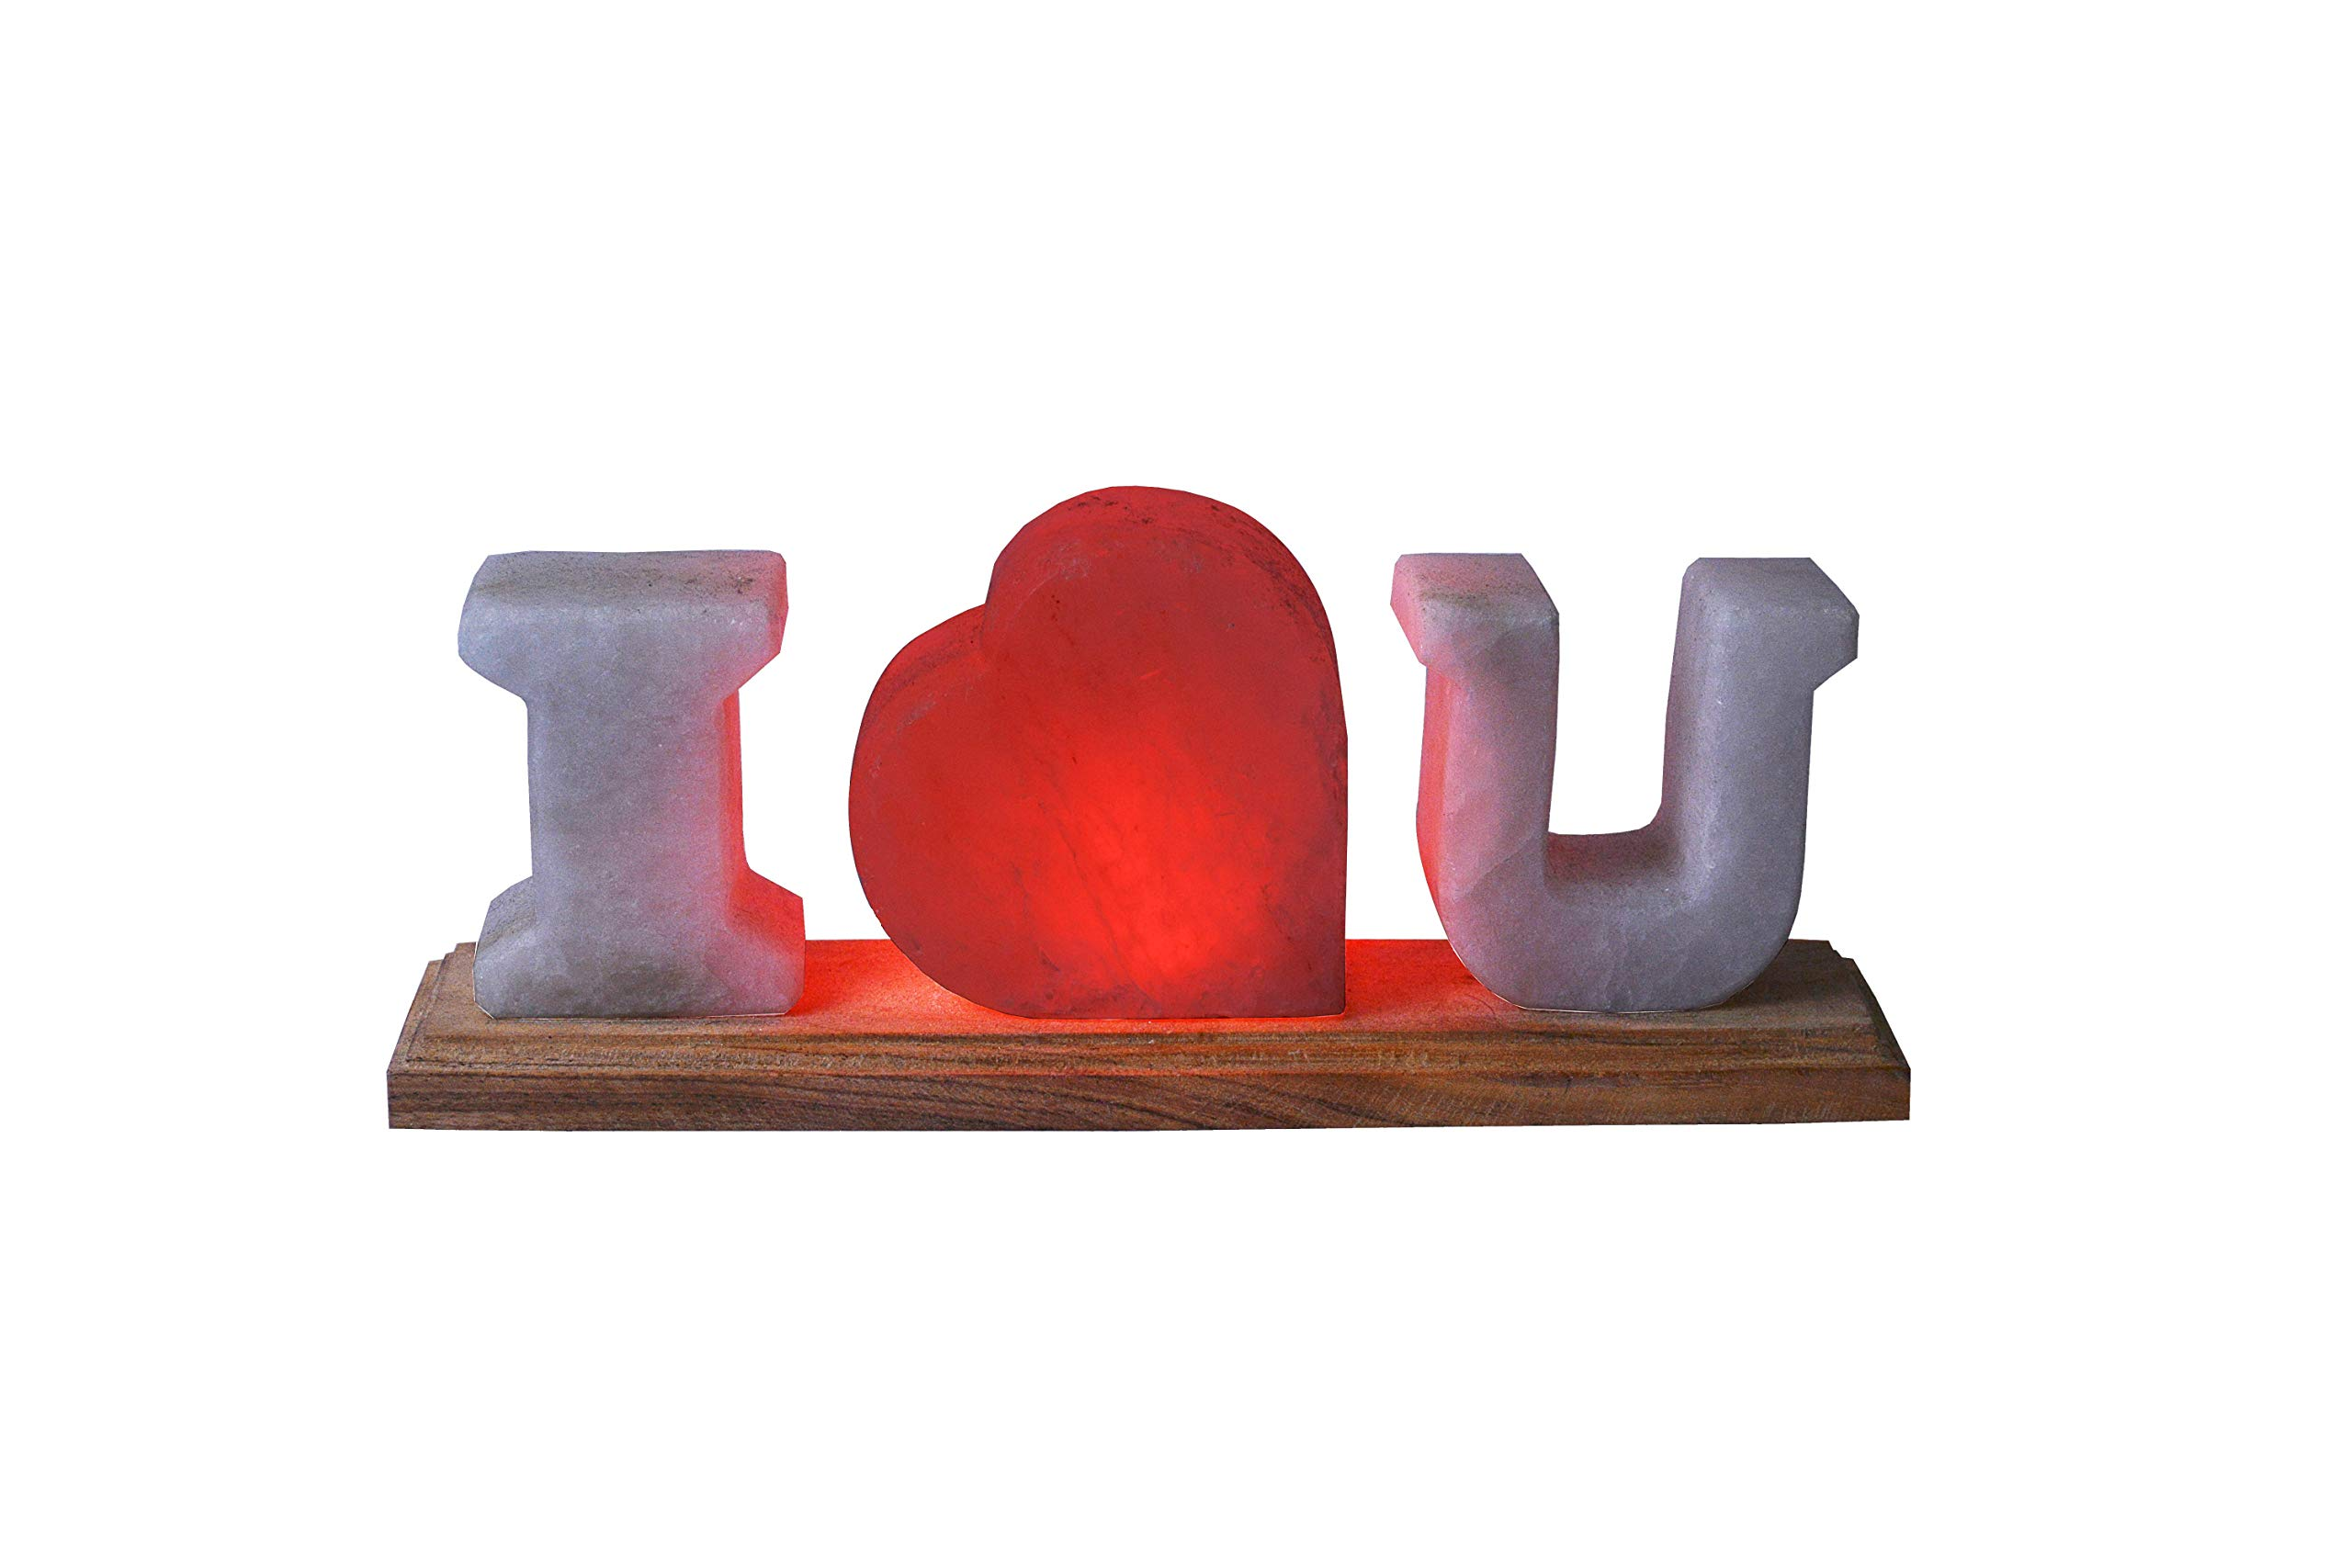 I Love You Shaped Crystal Rock Salt Lamp - Combination of Himalayan Pink and Crystal White Salt - Romantic Novelty for Holiday Gift, Anniversary, Birthday, Christmas, Valentine's Day - SENSE OF GLOW